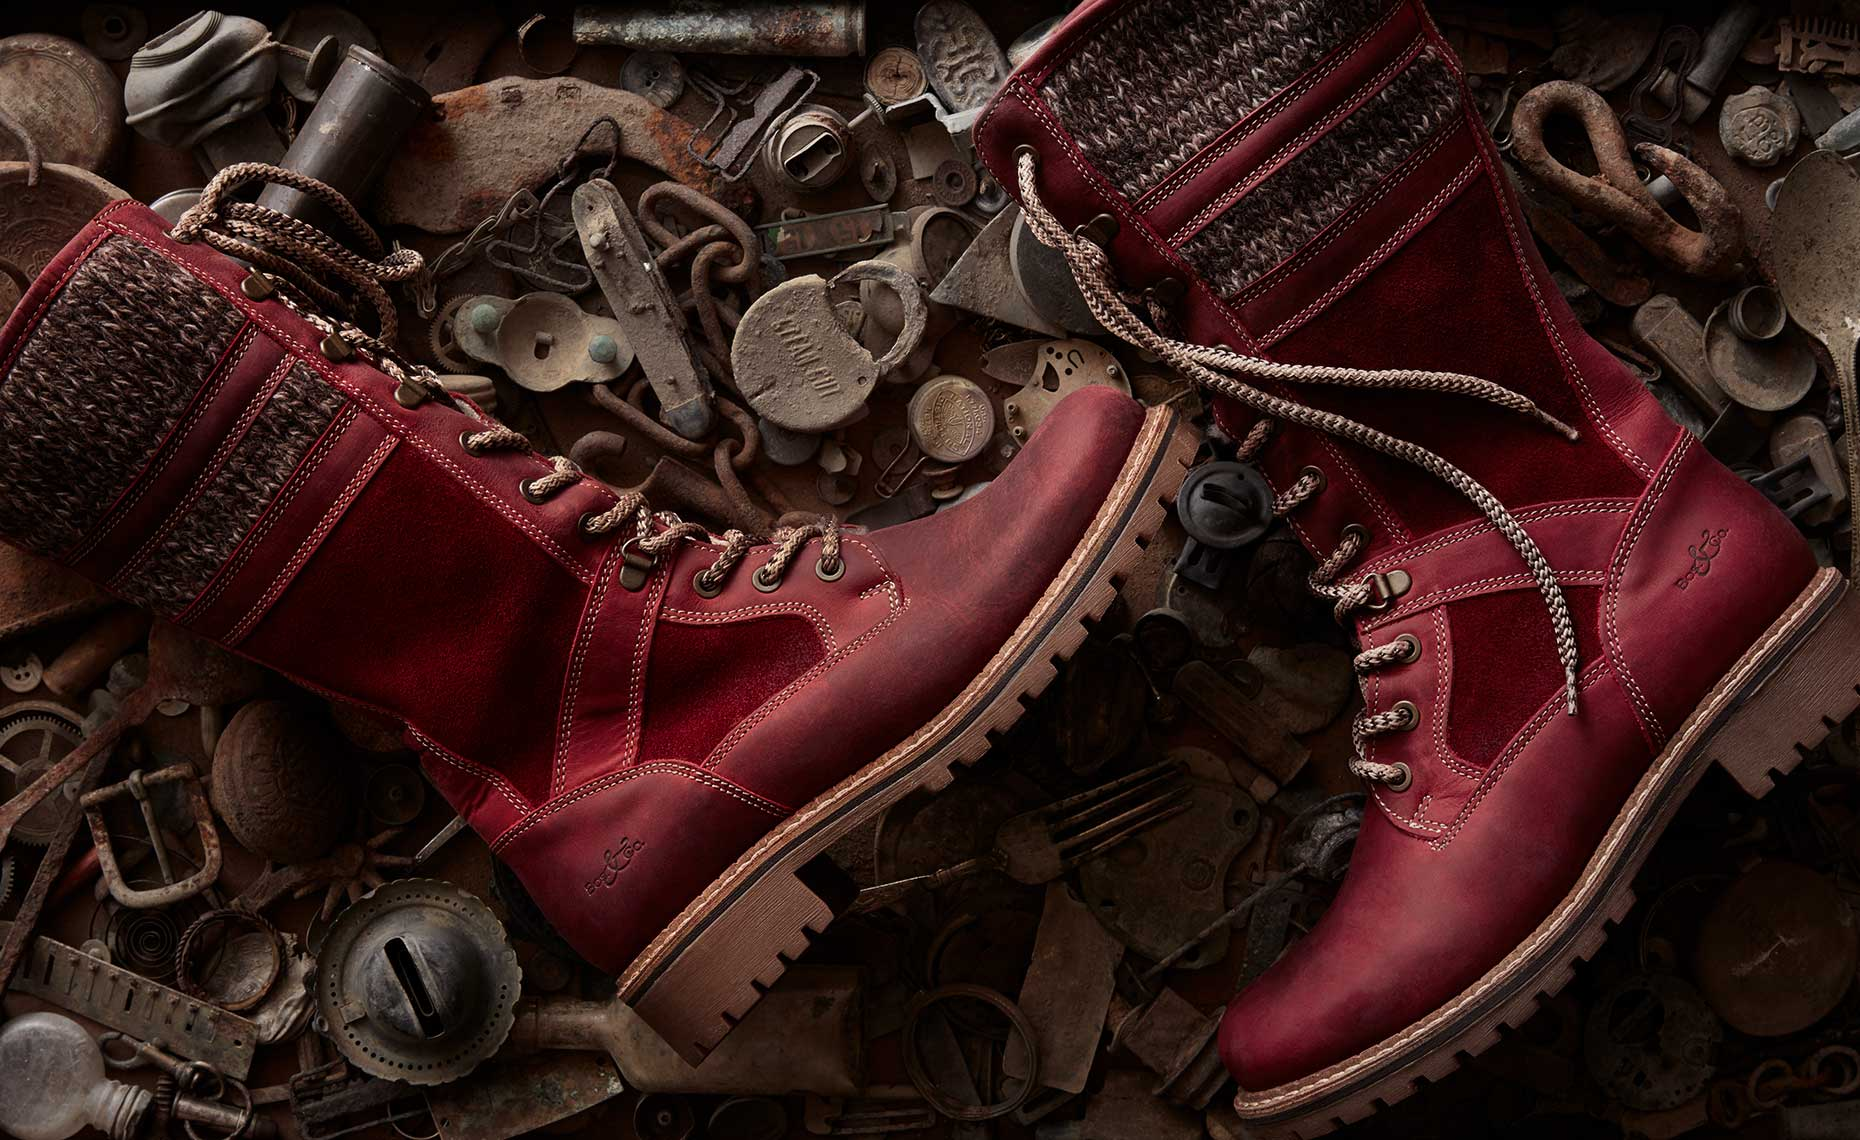 Red boots on metal objects.